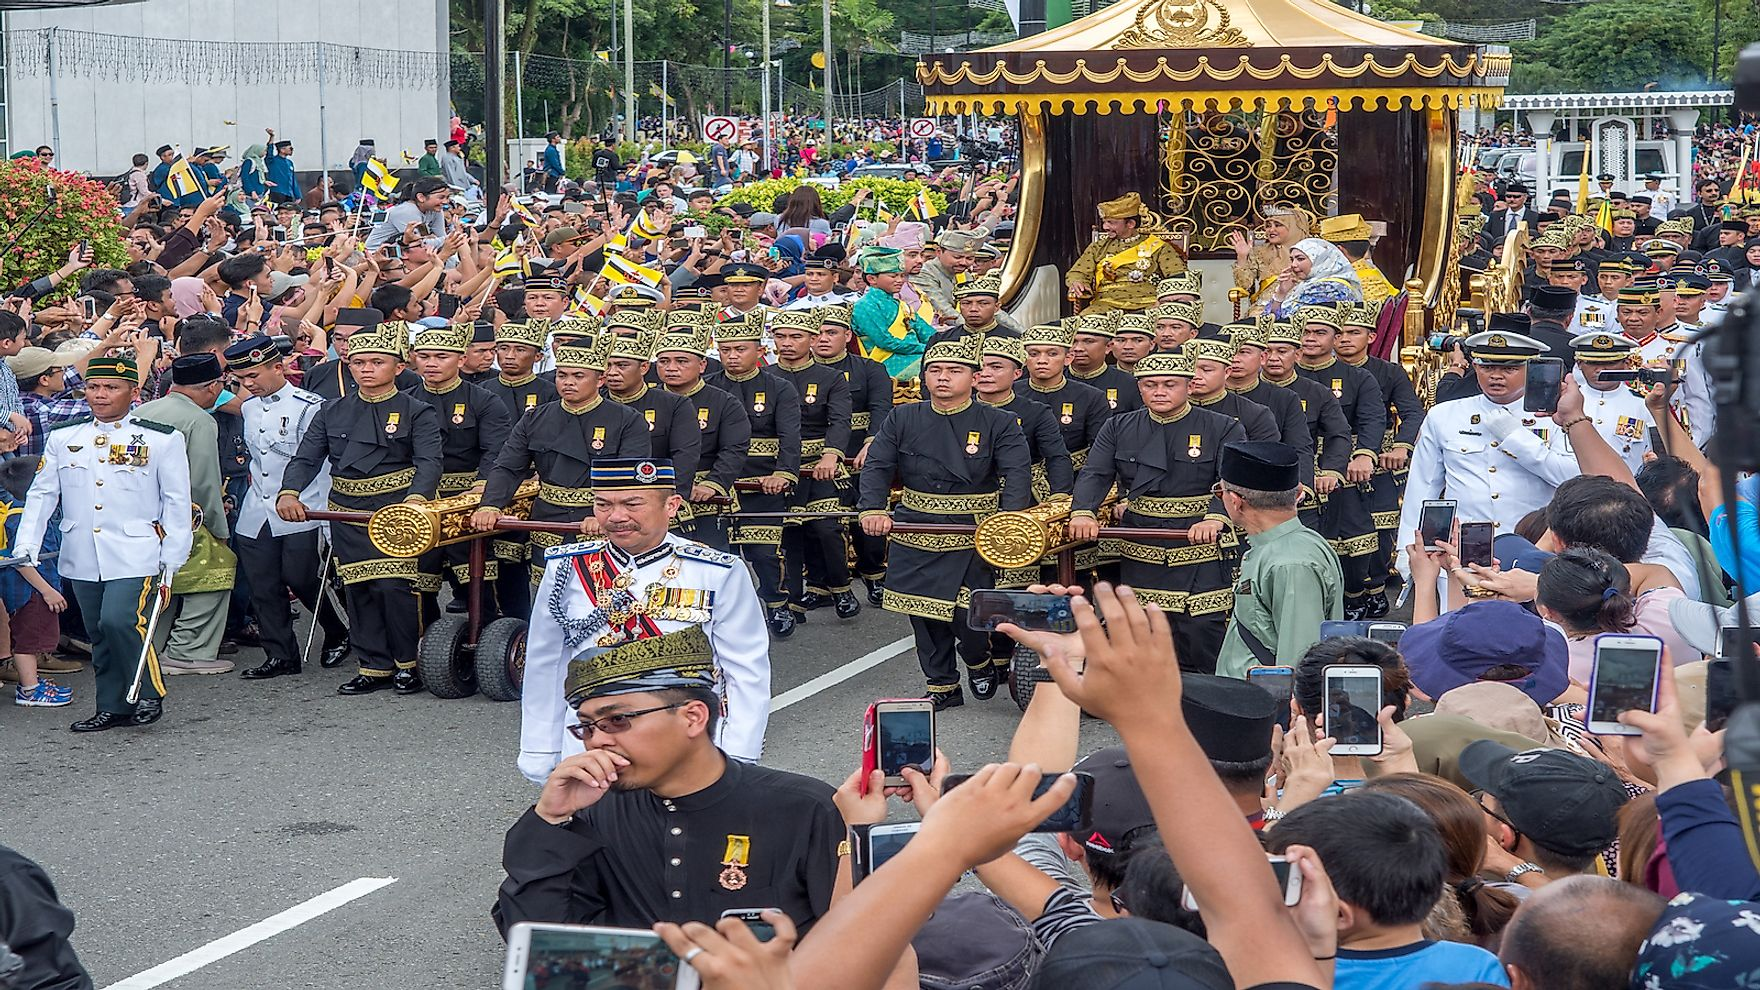 Brunei's Sultan marked 50 years on the throne with a glittering procession. Editorial credit: james wk / Shutterstock.com